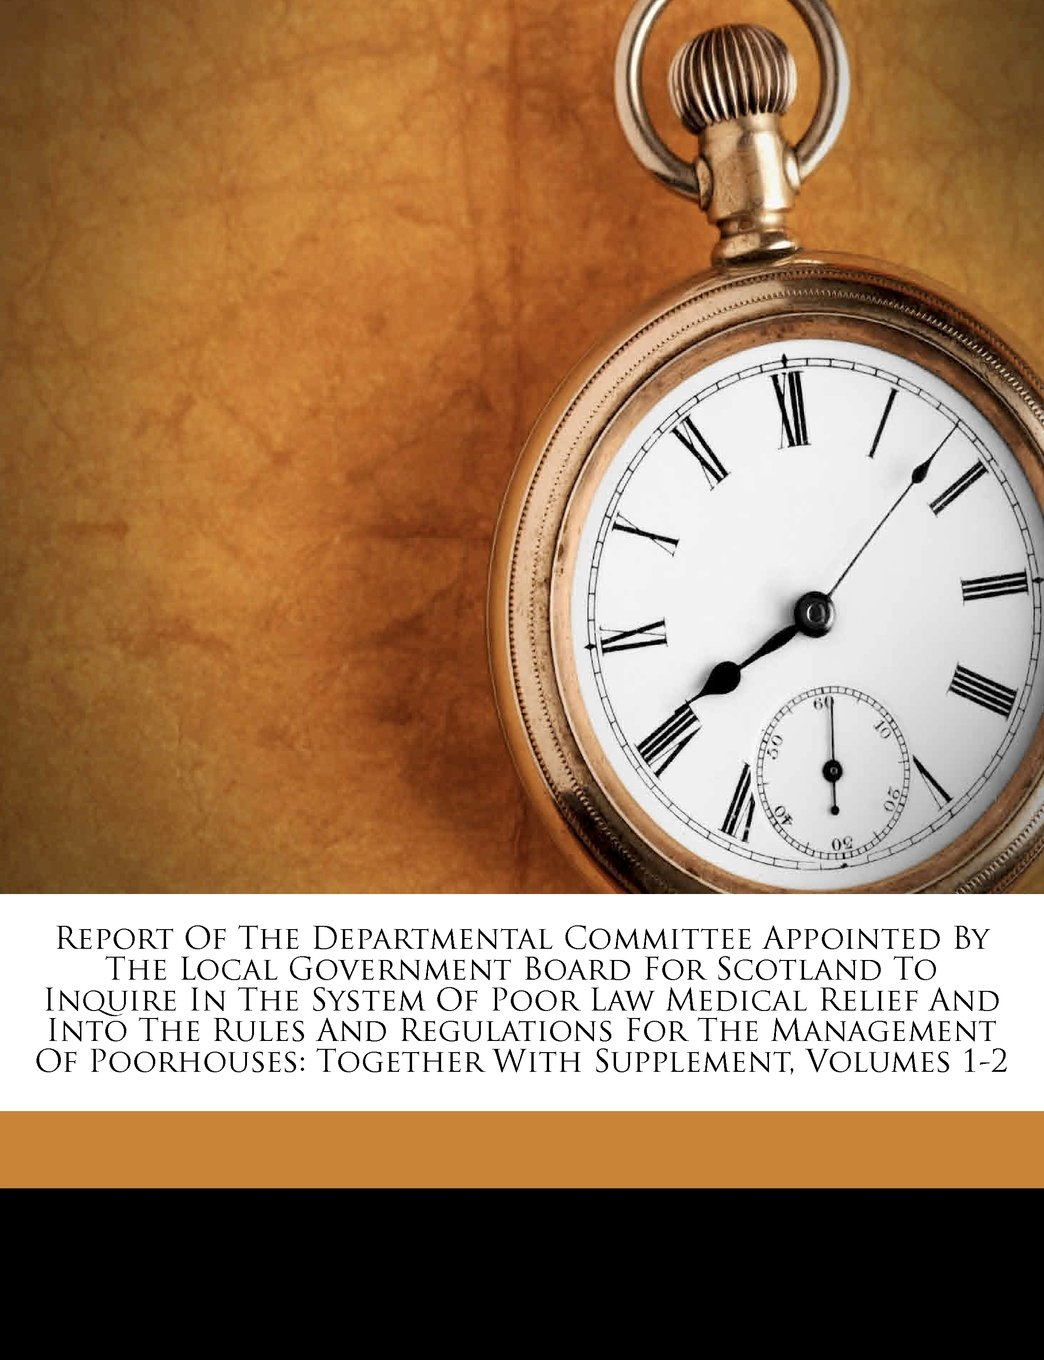 Report Of The Departmental Committee Appointed By The Local Government Board For Scotland To Inquire In The System Of Poor Law Medical Relief And Into ... Together With Supplement, Volumes 1-2 PDF